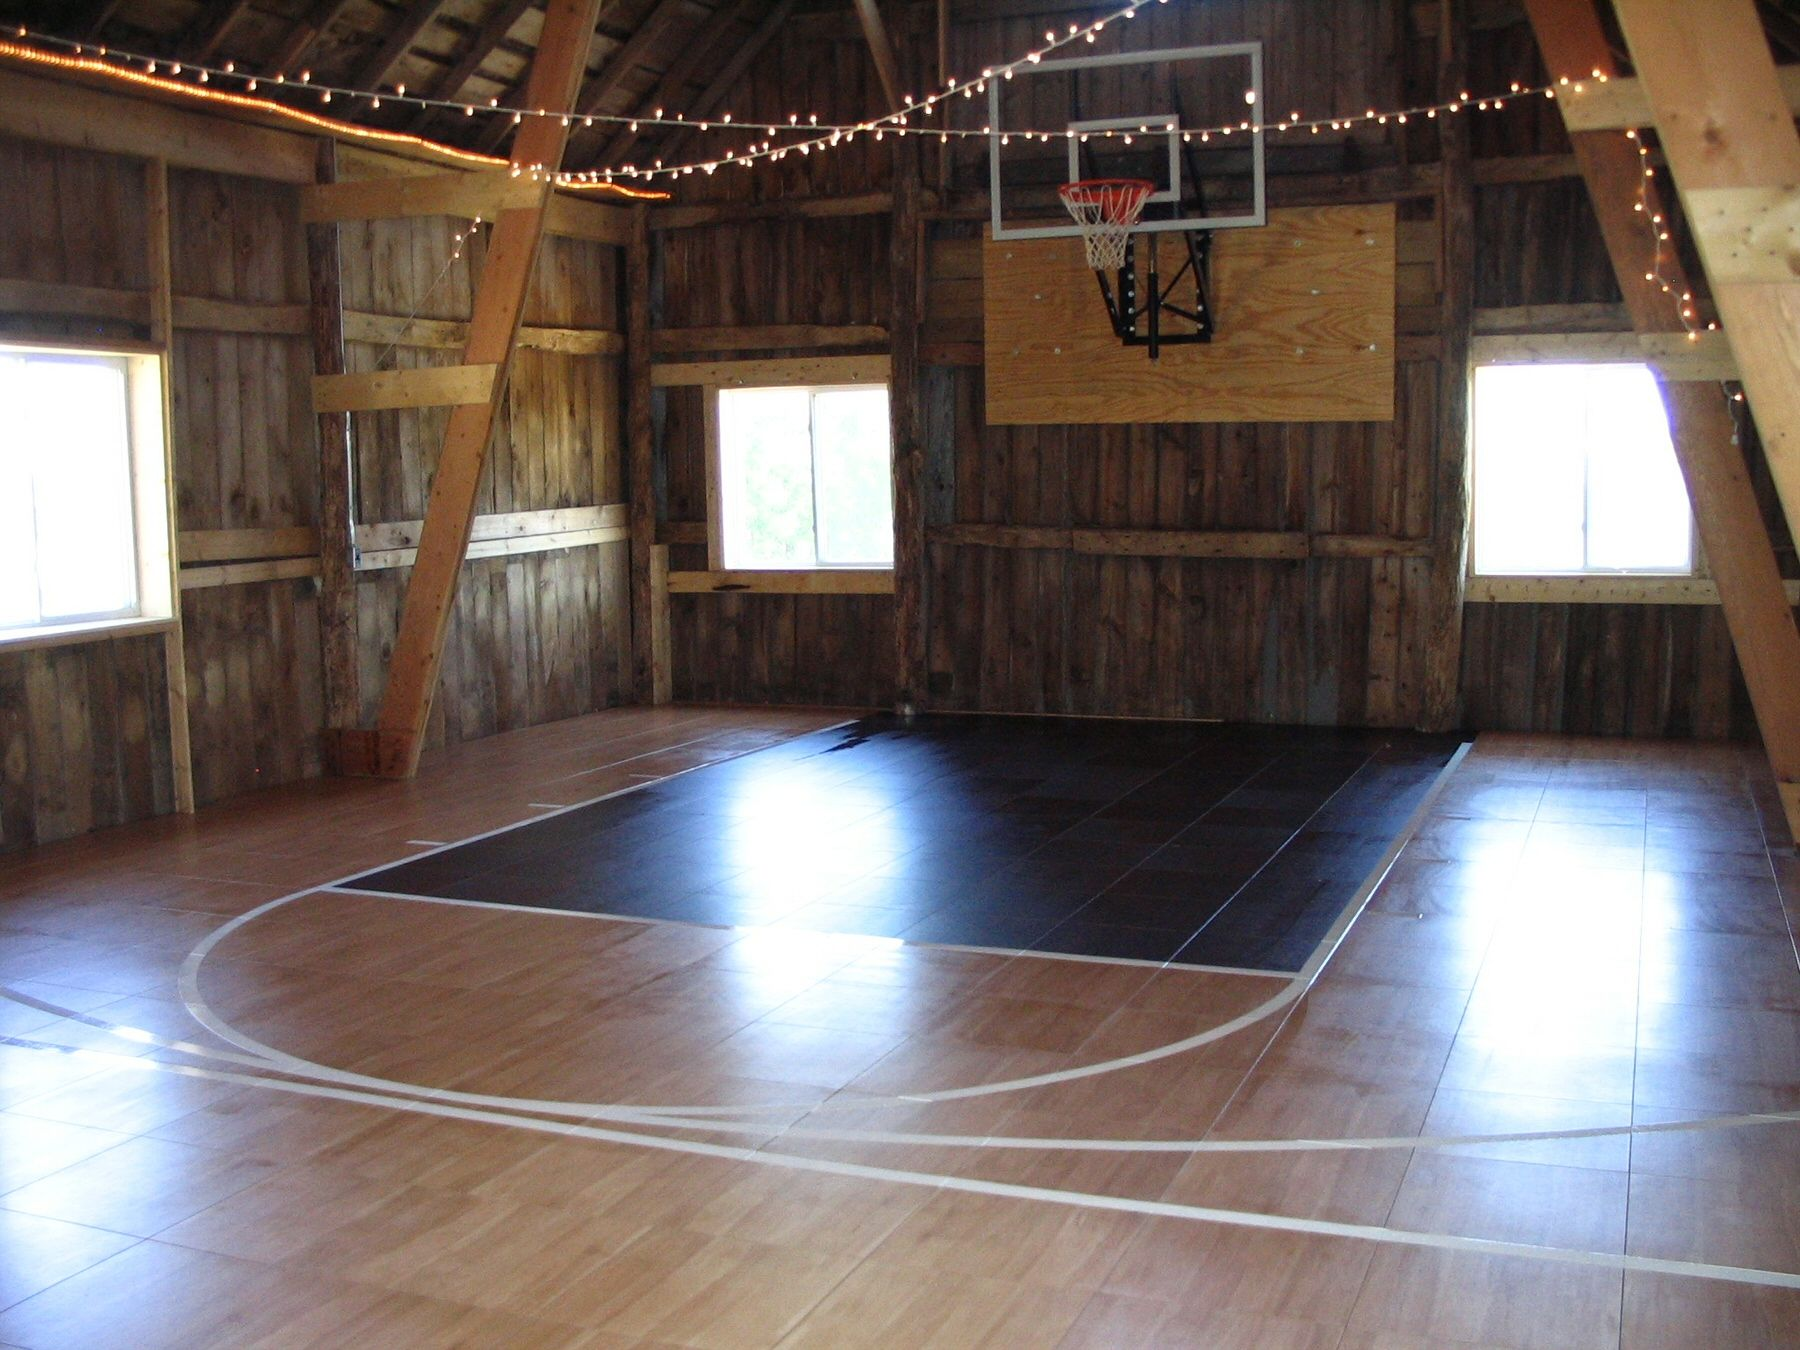 How much to build a basketball court in backyard how much Cost to build basketball court